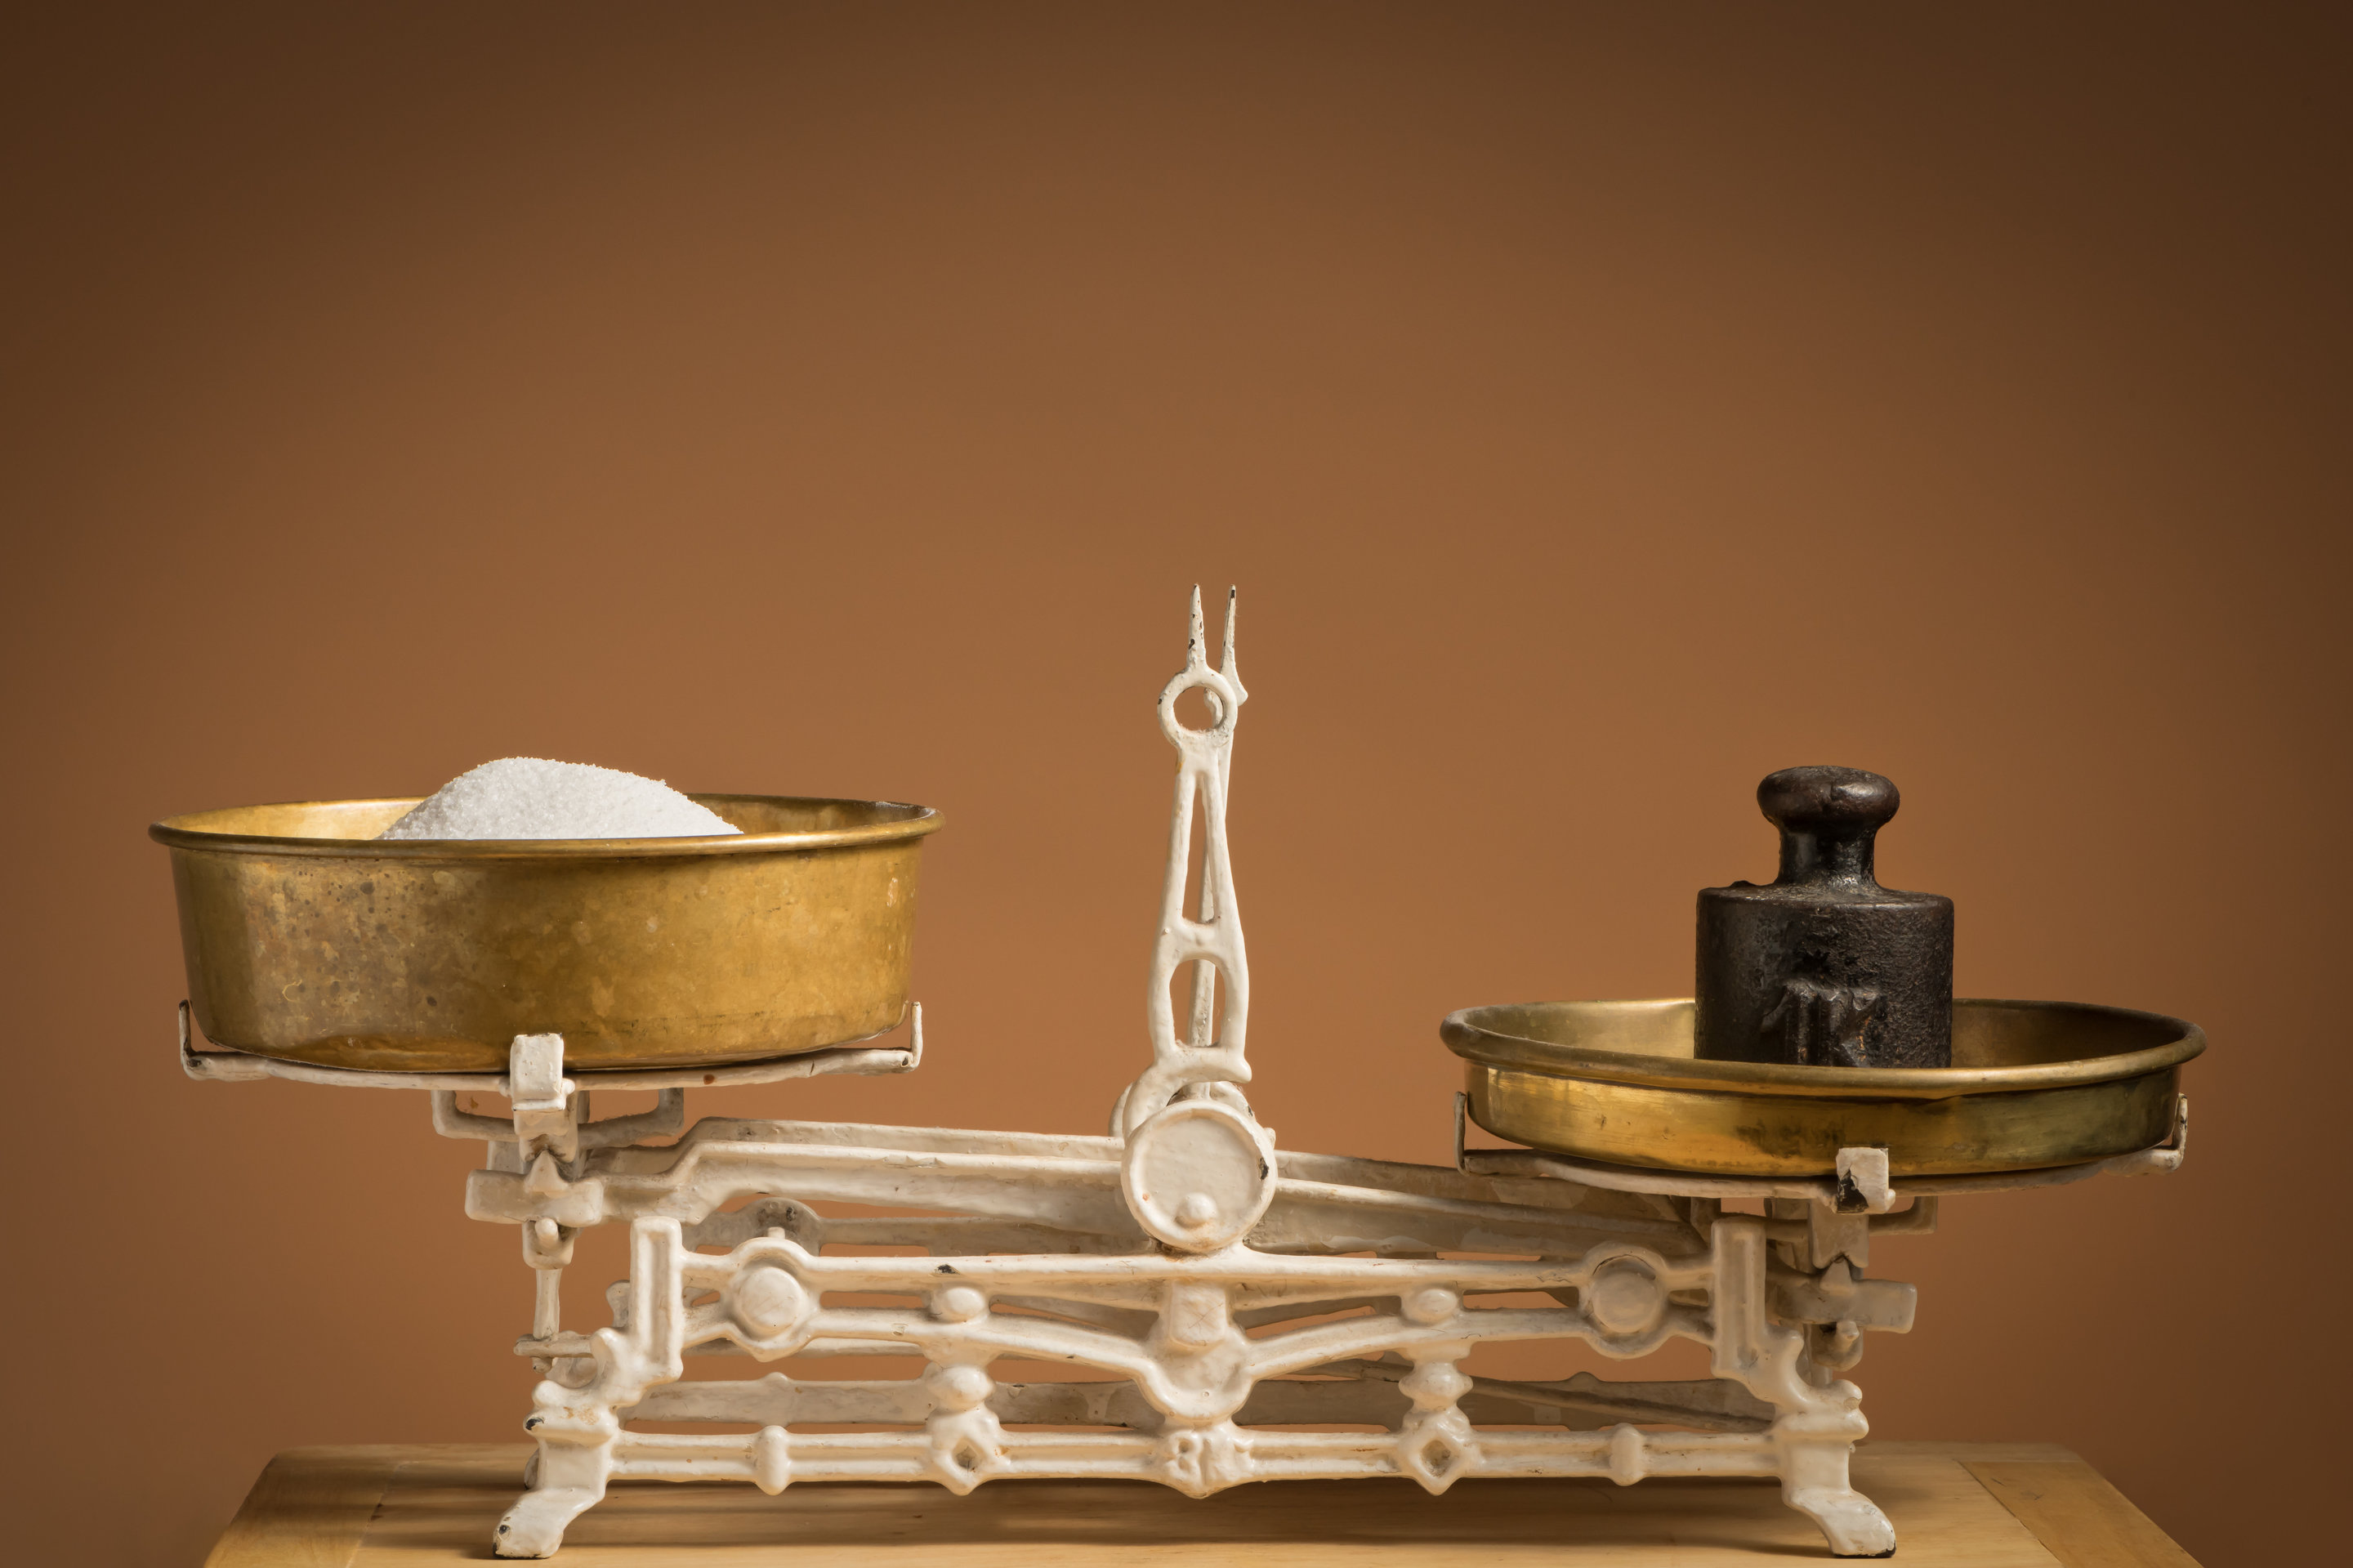 The kilogram is being redefined